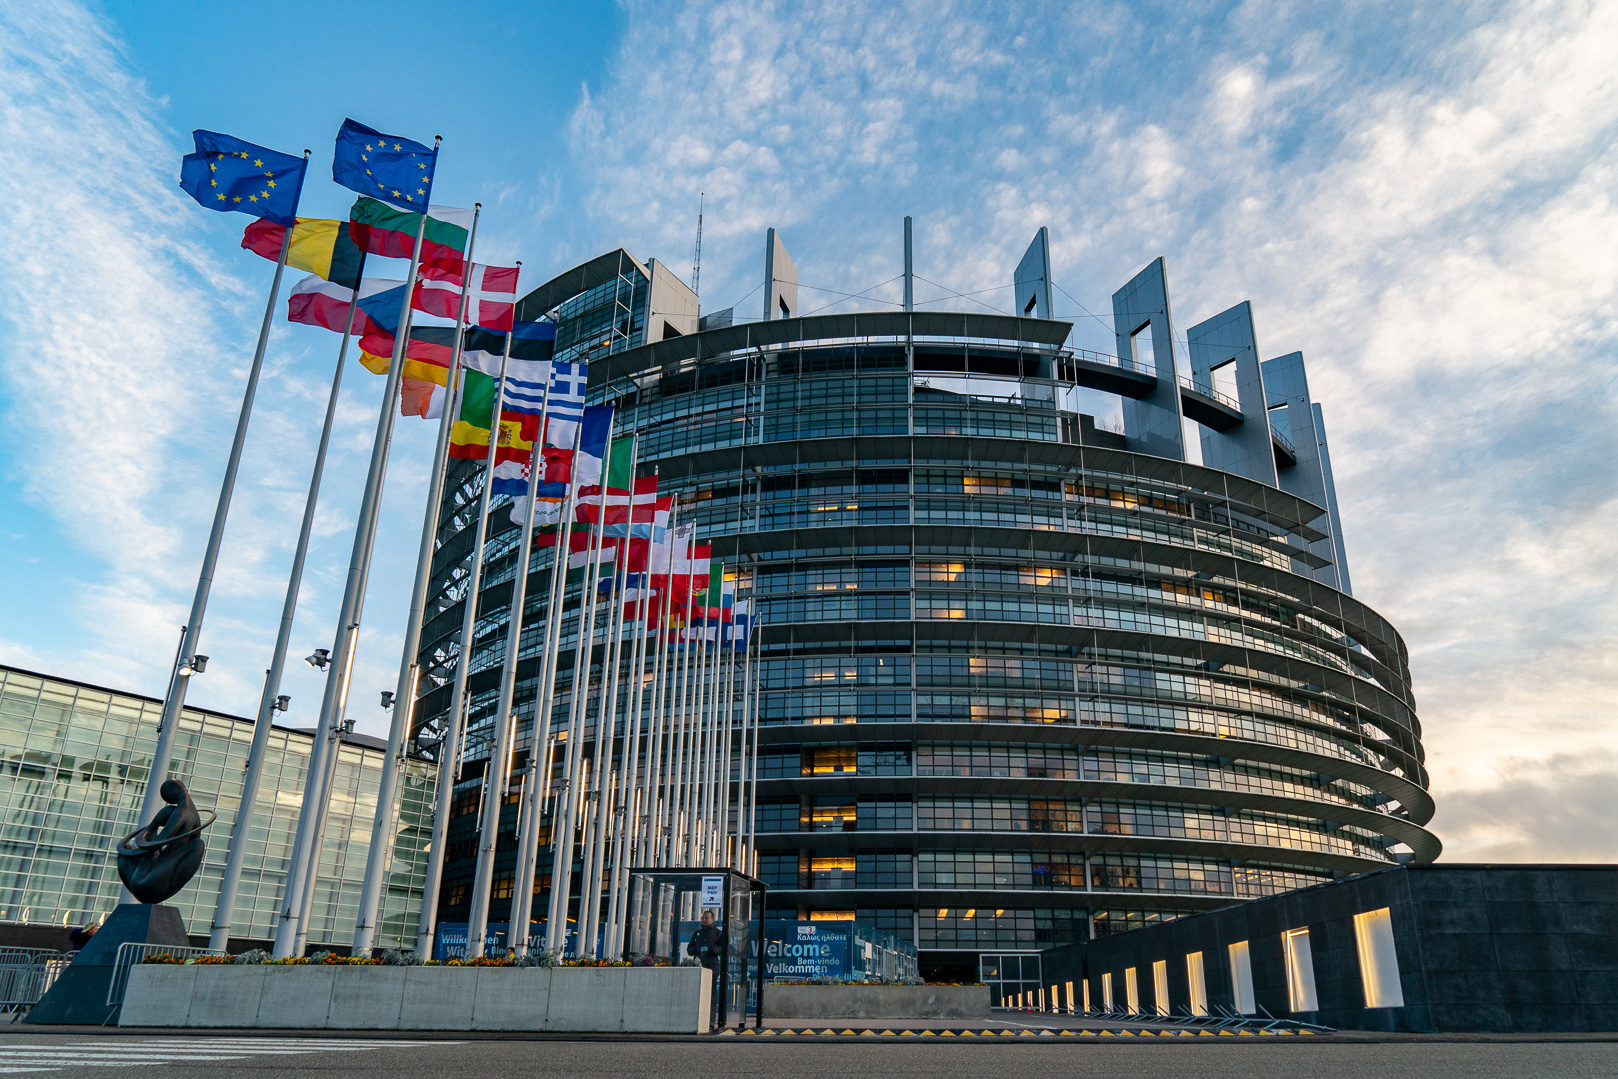 Syrian Network for Human Rights Is a Primary Source in the Latest European Parliament Resolution